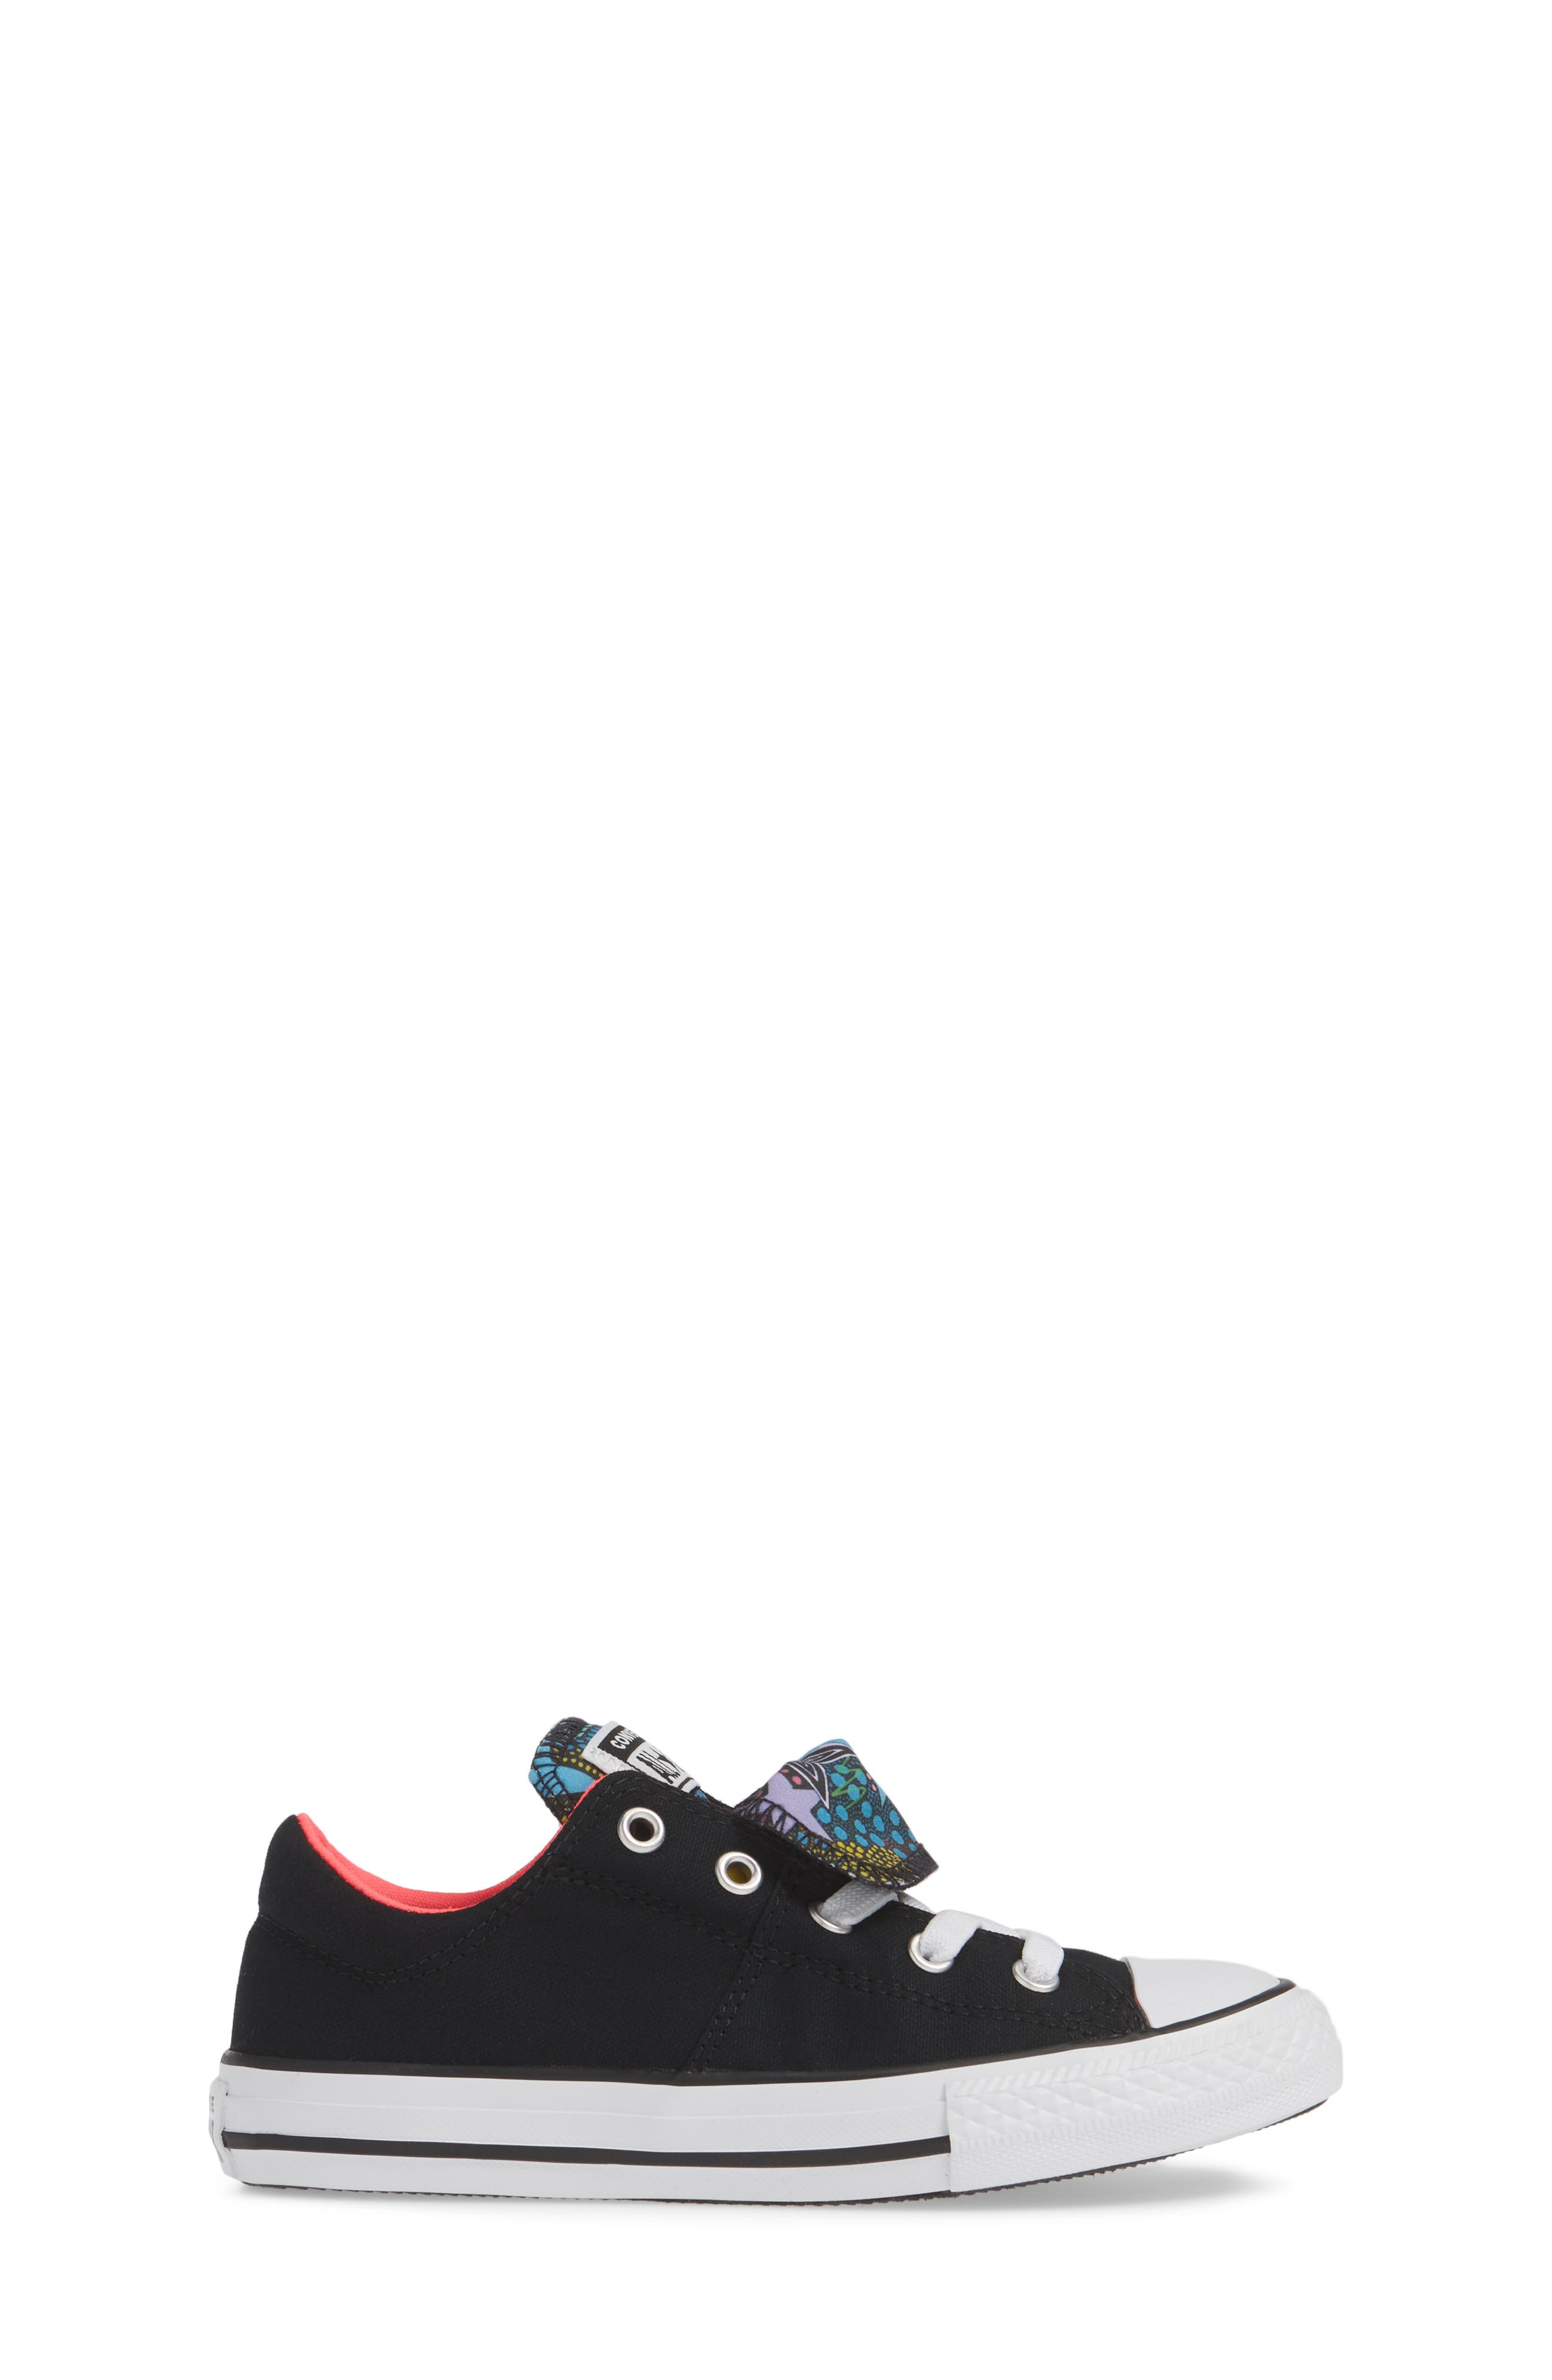 ,                             Chuck Taylor<sup>®</sup> All Star<sup>®</sup> Maddie Double Tongue Sneaker,                             Alternate thumbnail 3, color,                             001